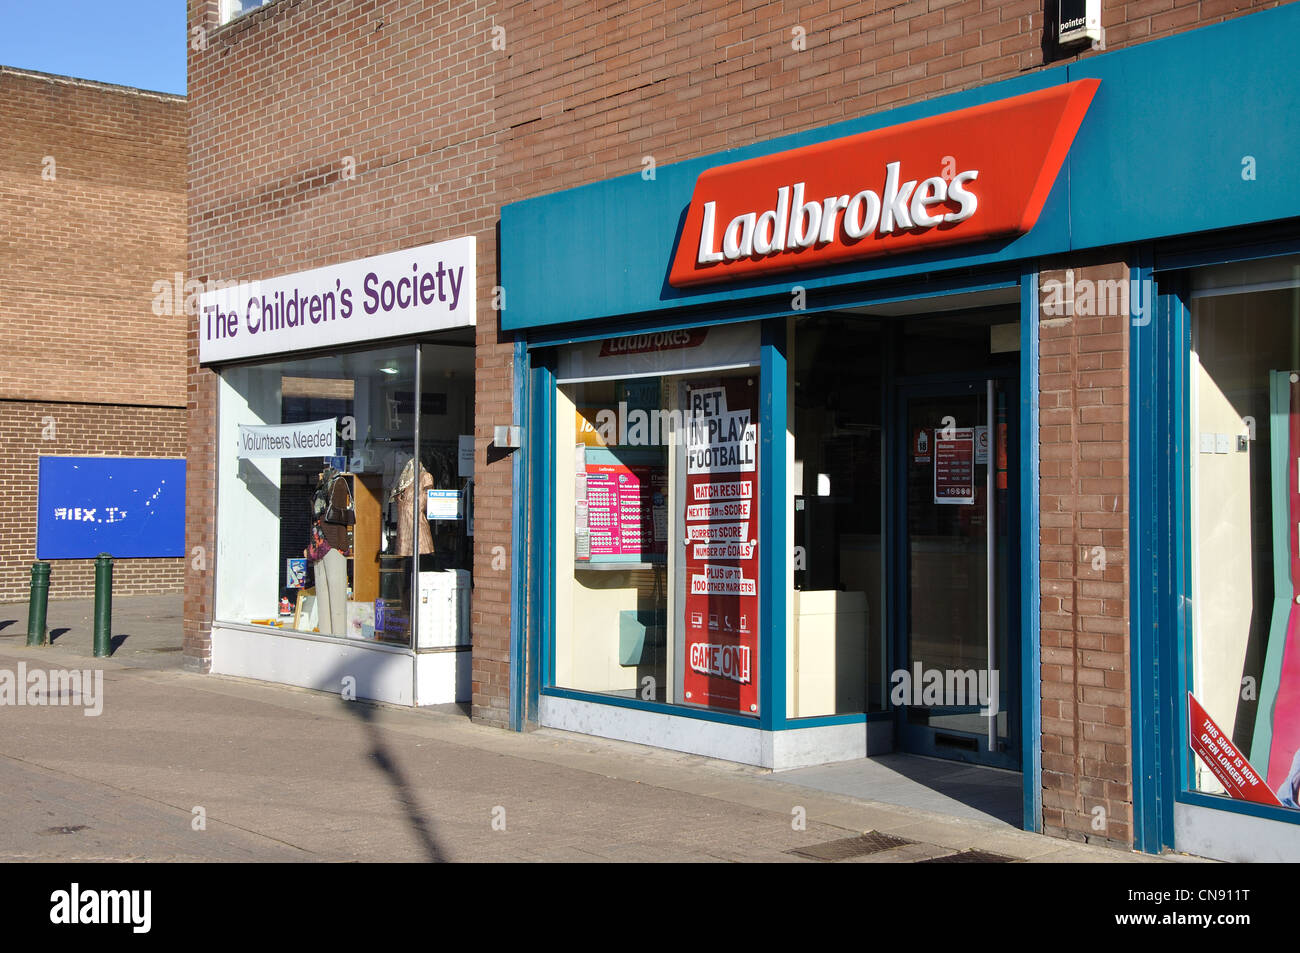 Ladbrokes, Middle Street, Consett, Co Durham, England, UK - Stock Image